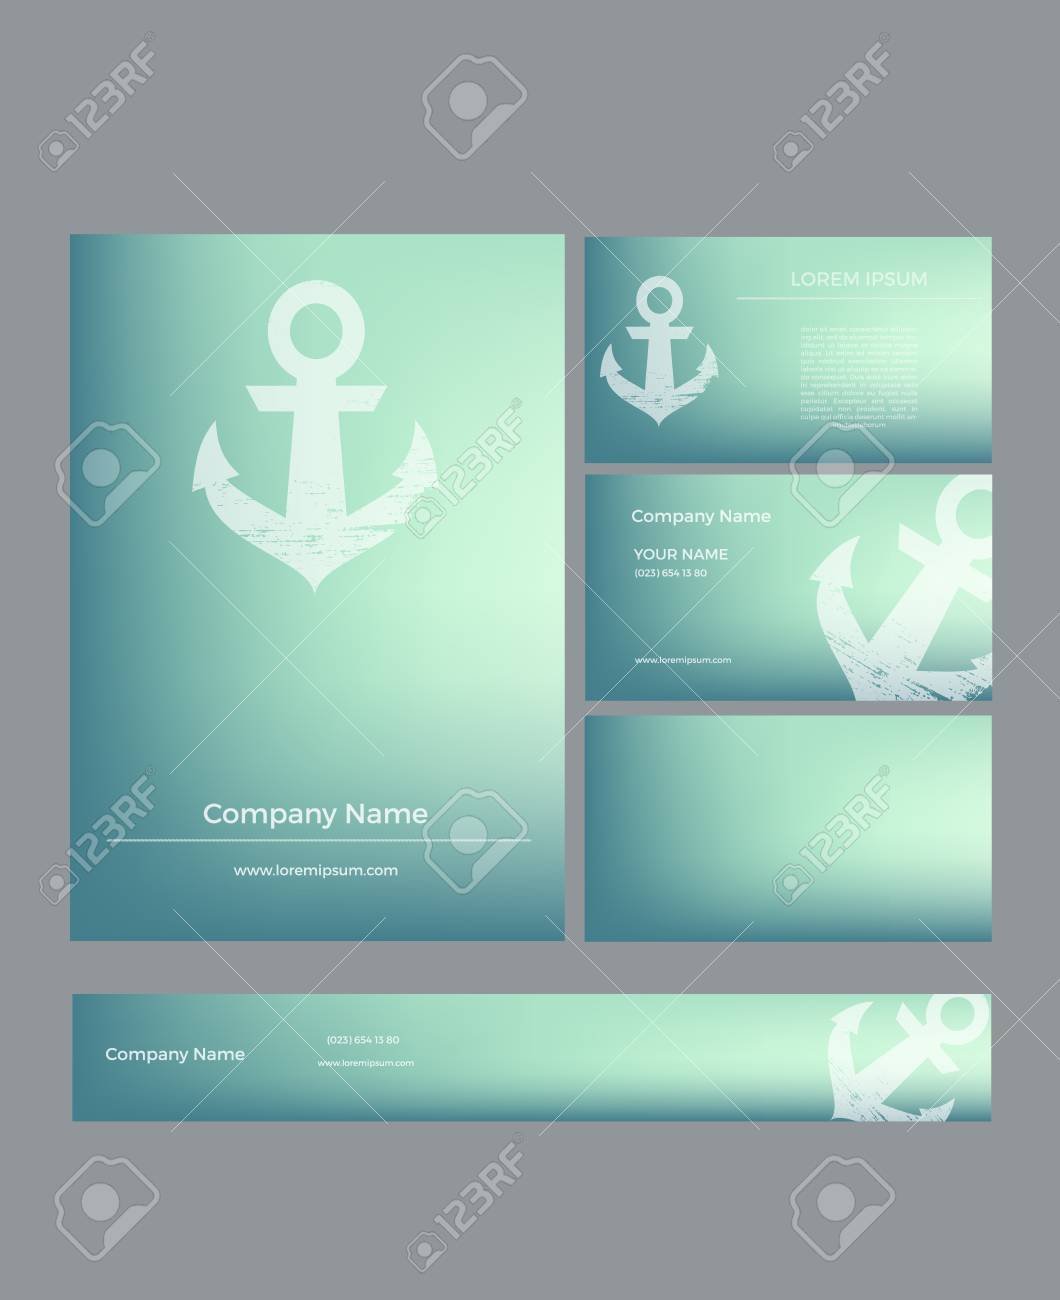 Styles of business cards choice image free business cards styles of business cards image collections free business cards styles of business cards images free business magicingreecefo Gallery